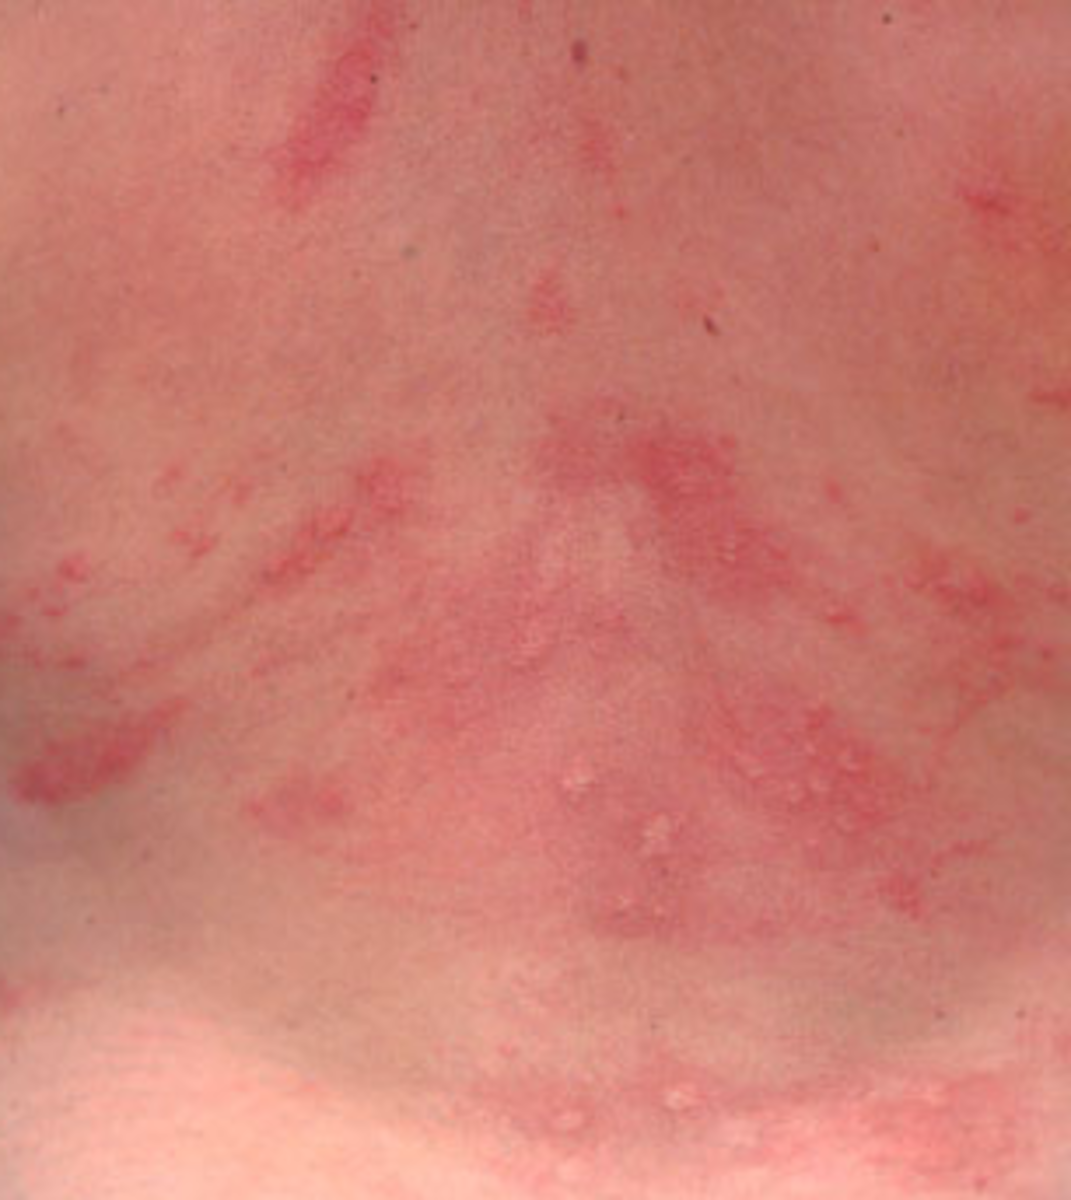 rashes on torso not itchy